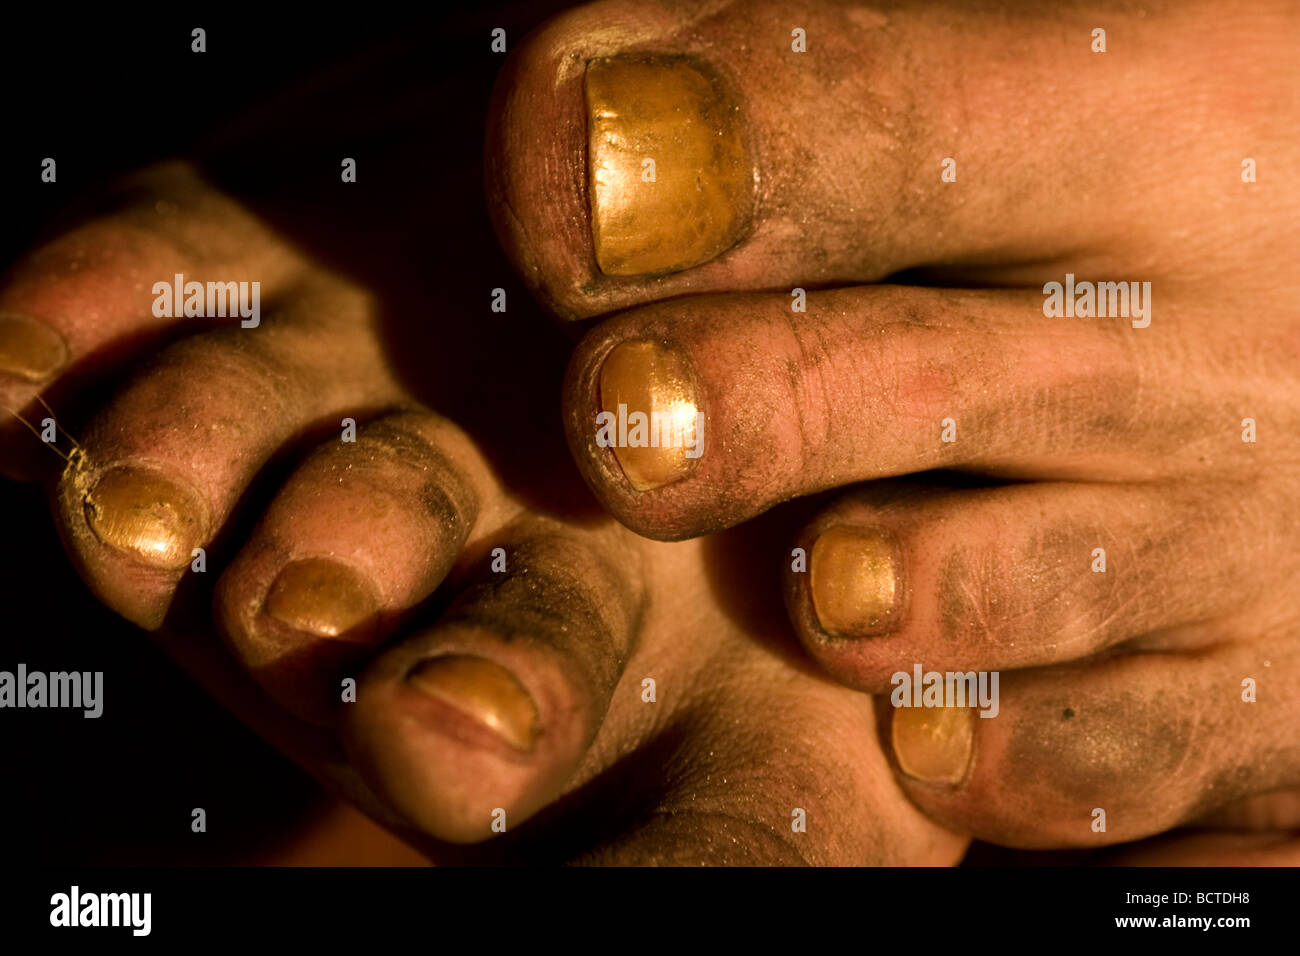 A woman's feet after completing a firewalk. - Stock Image